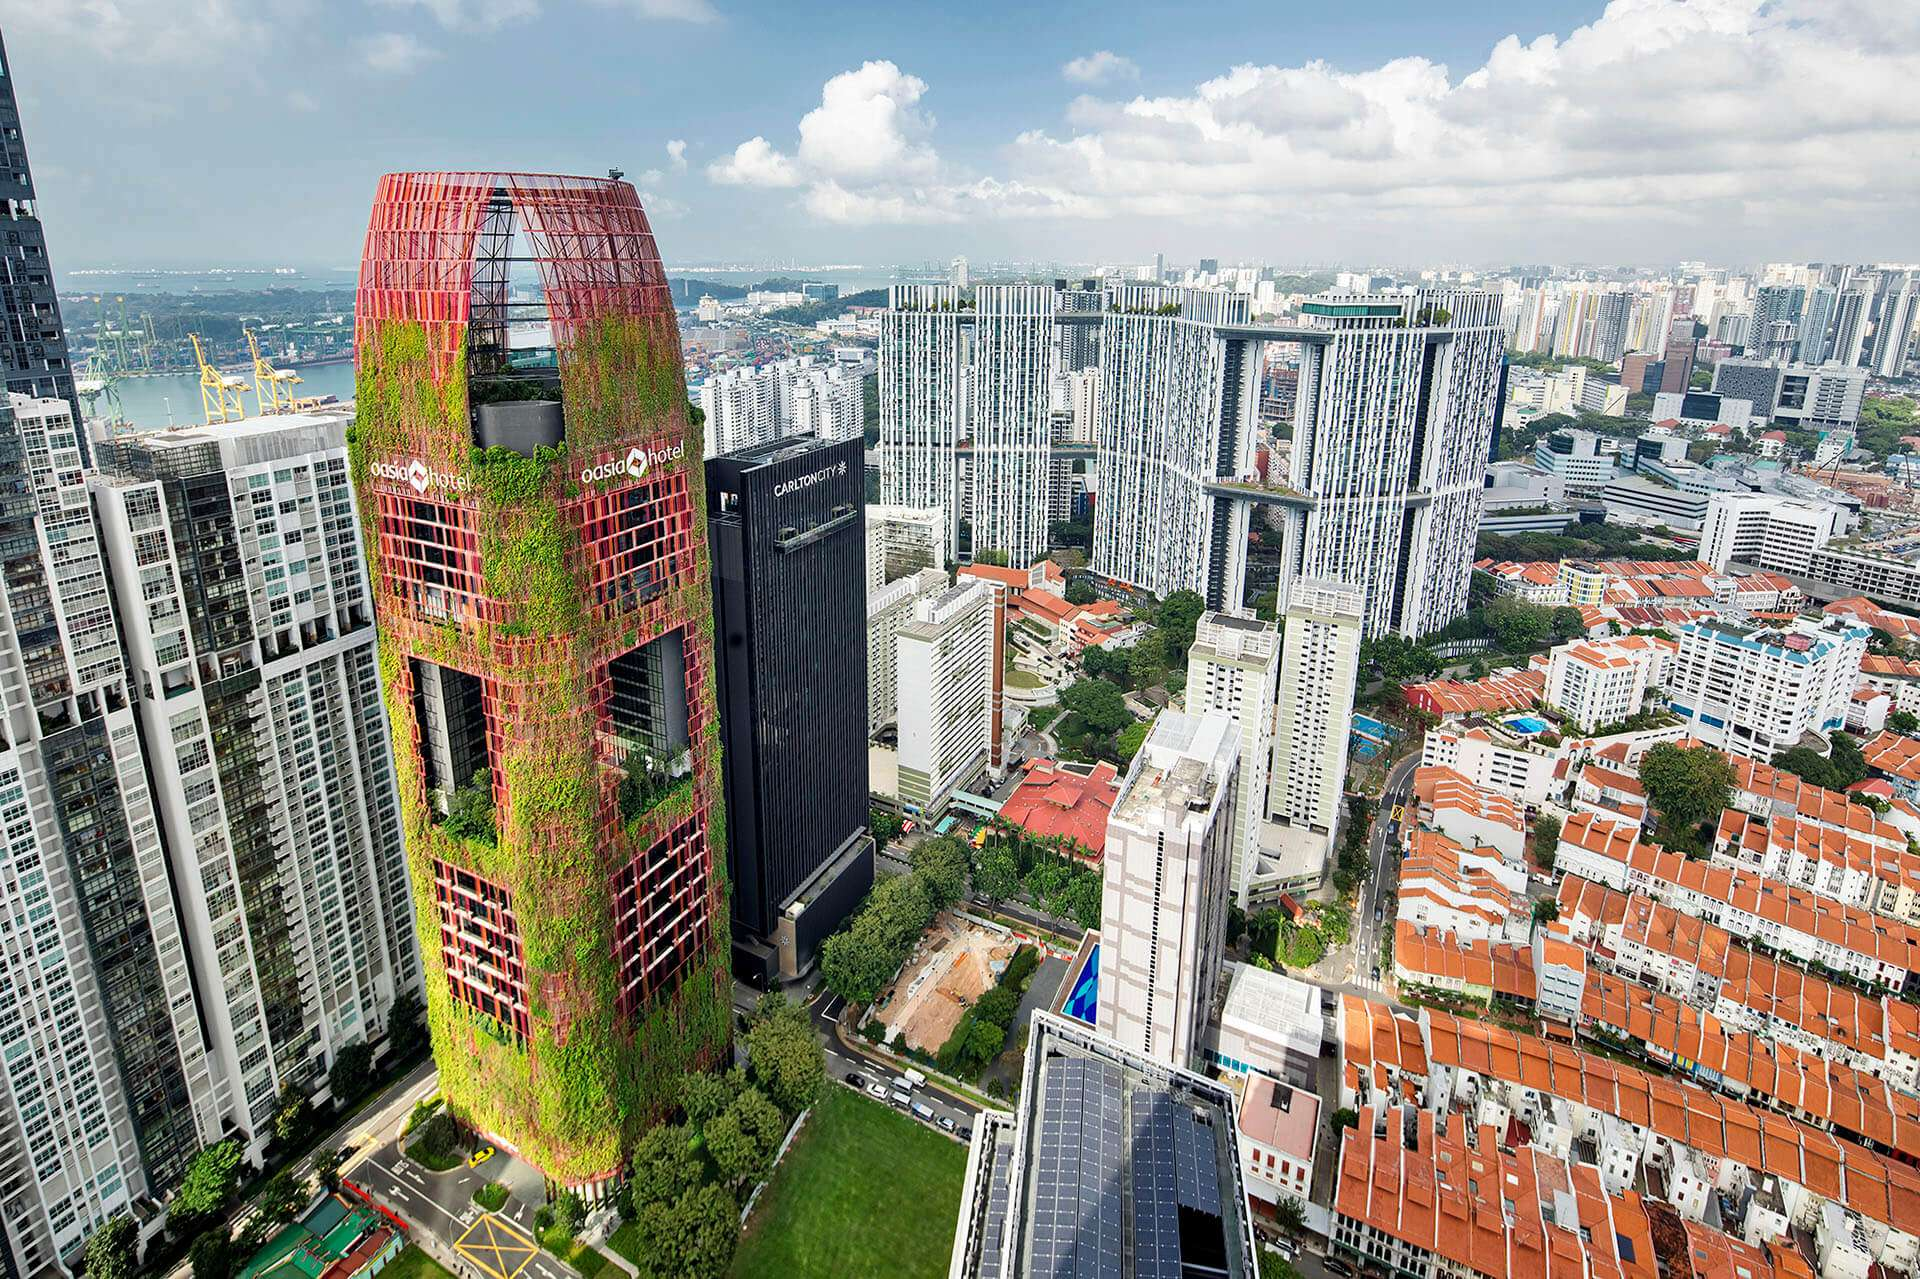 The Oasia Hotel, located in Singapore's business district